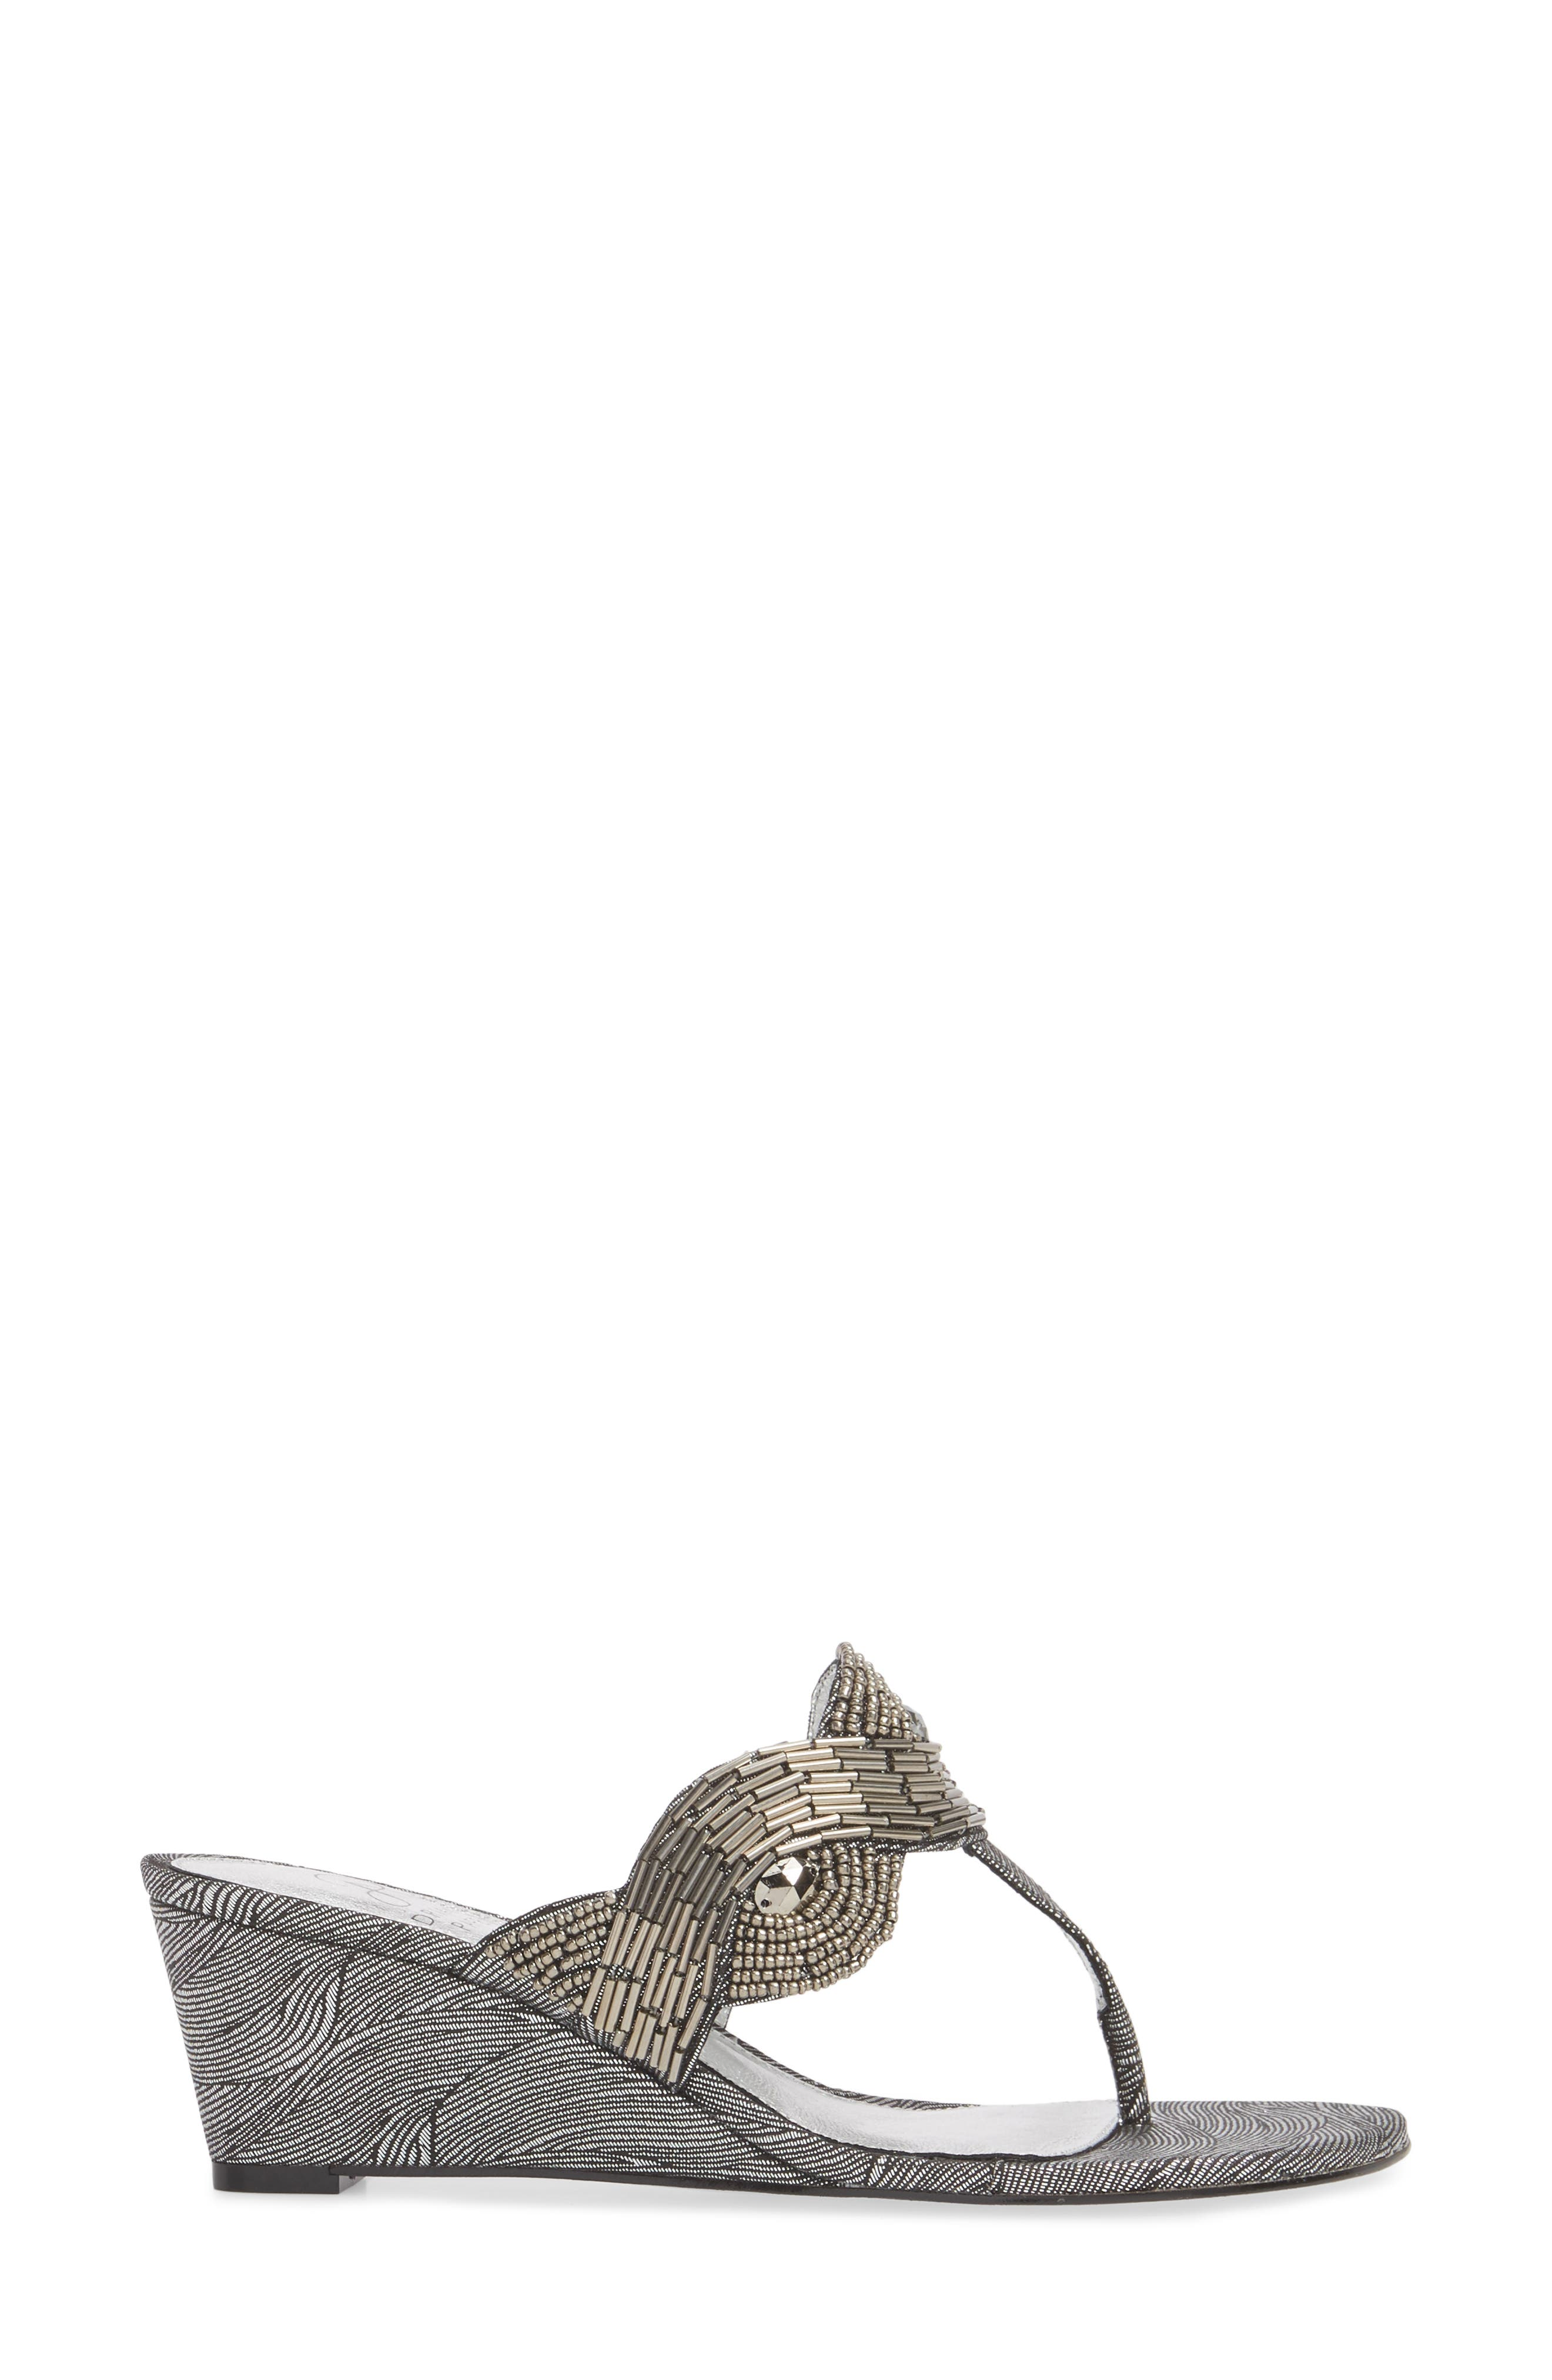 ADRIANNA PAPELL,                             Coco Beaded Wedge Sandal,                             Alternate thumbnail 3, color,                             049